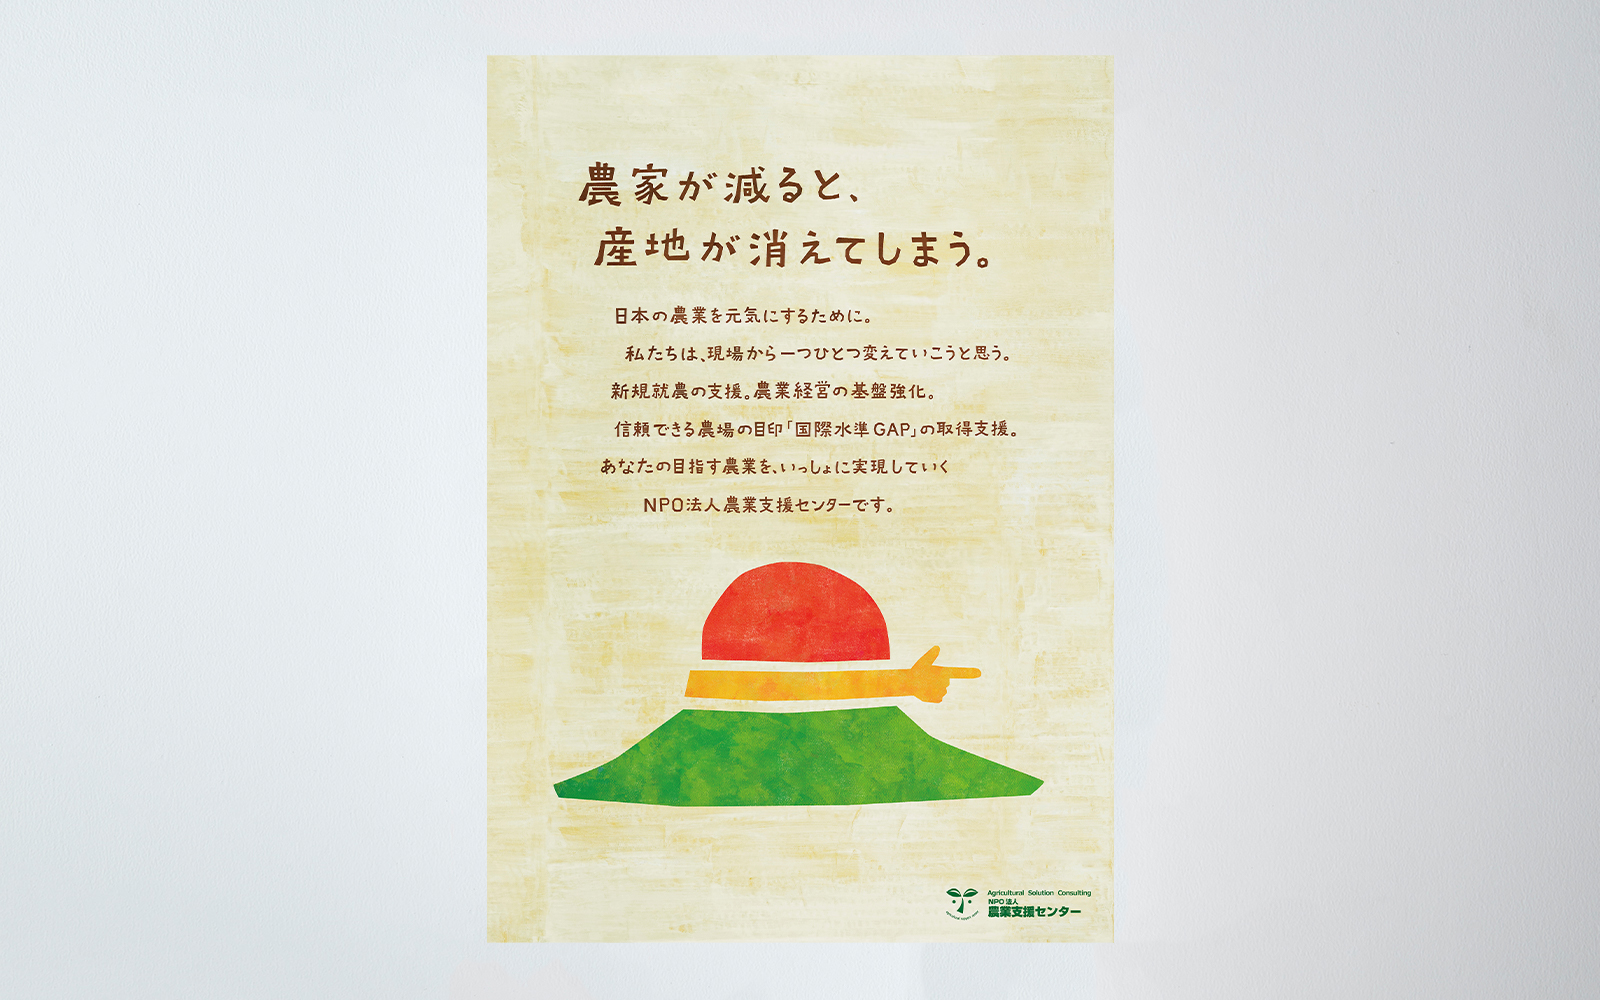 AGRICULTURE SUPPORT CENTER POSTER